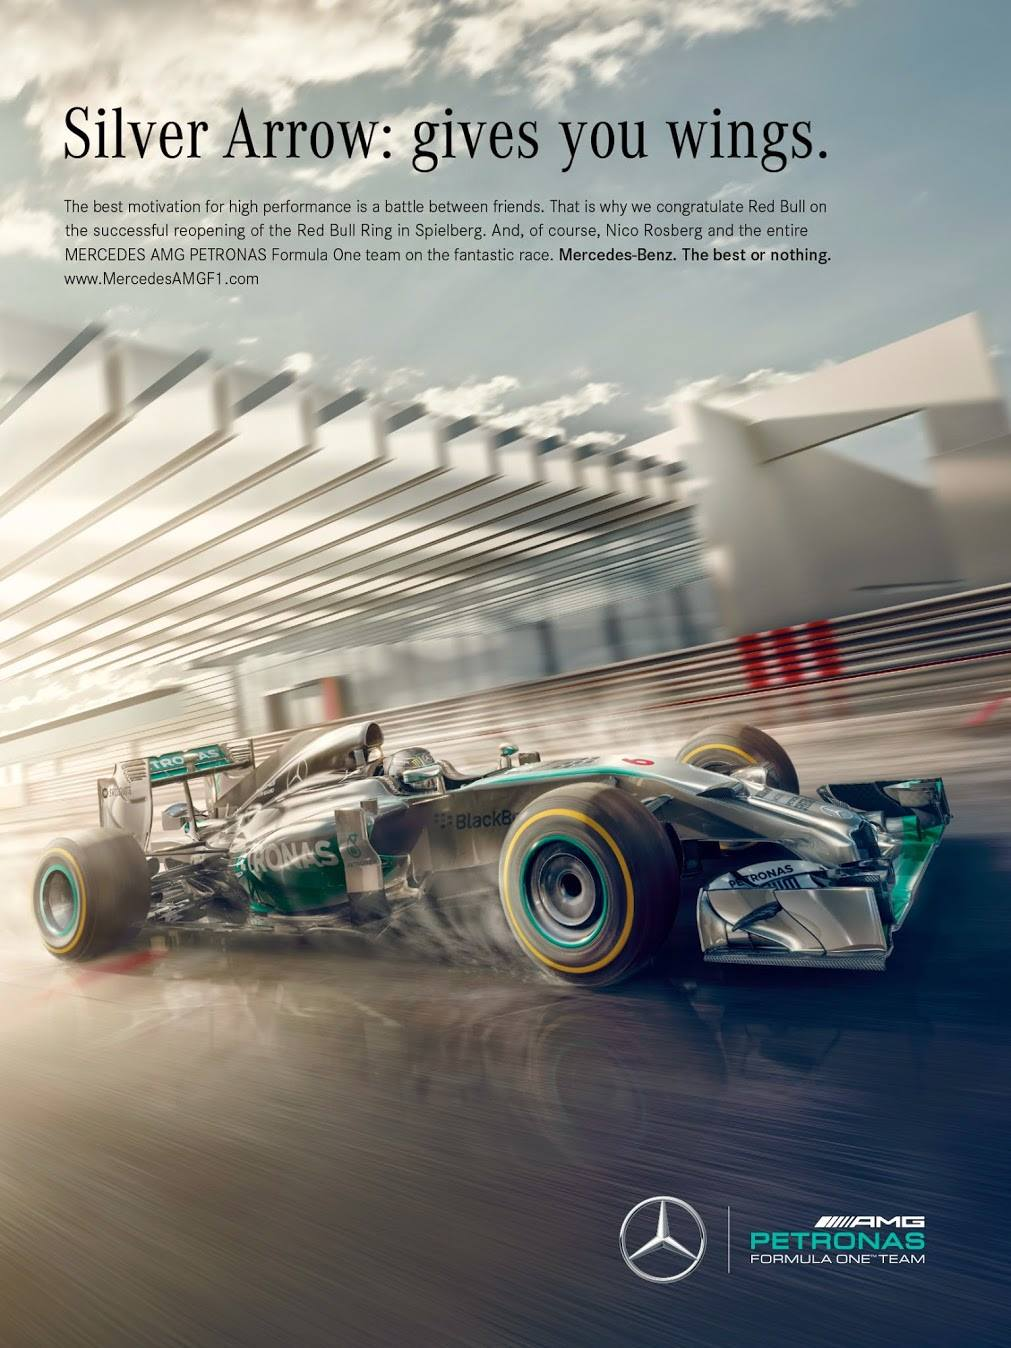 Mercedes Amg F1 Takes A Jab At Red Bull After Austrian Gp